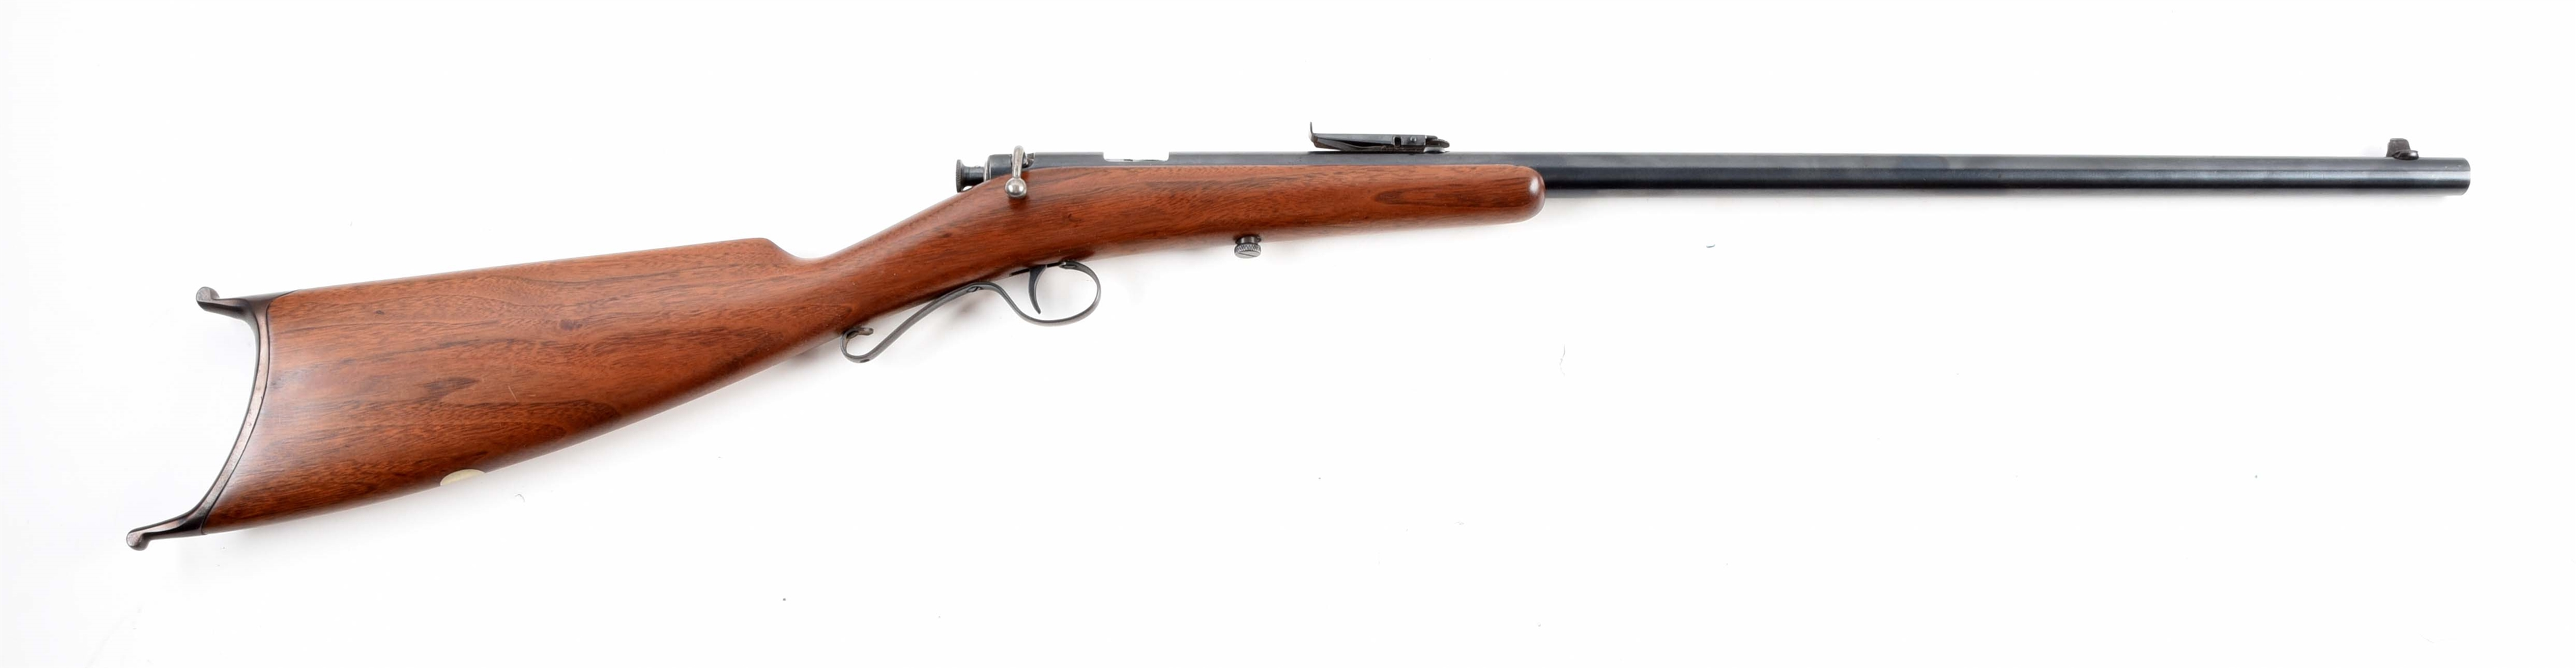 (C) SAVAGE MODEL 1905 SINGLE SHOT .22 LR BOLT ACTION RIFLE.